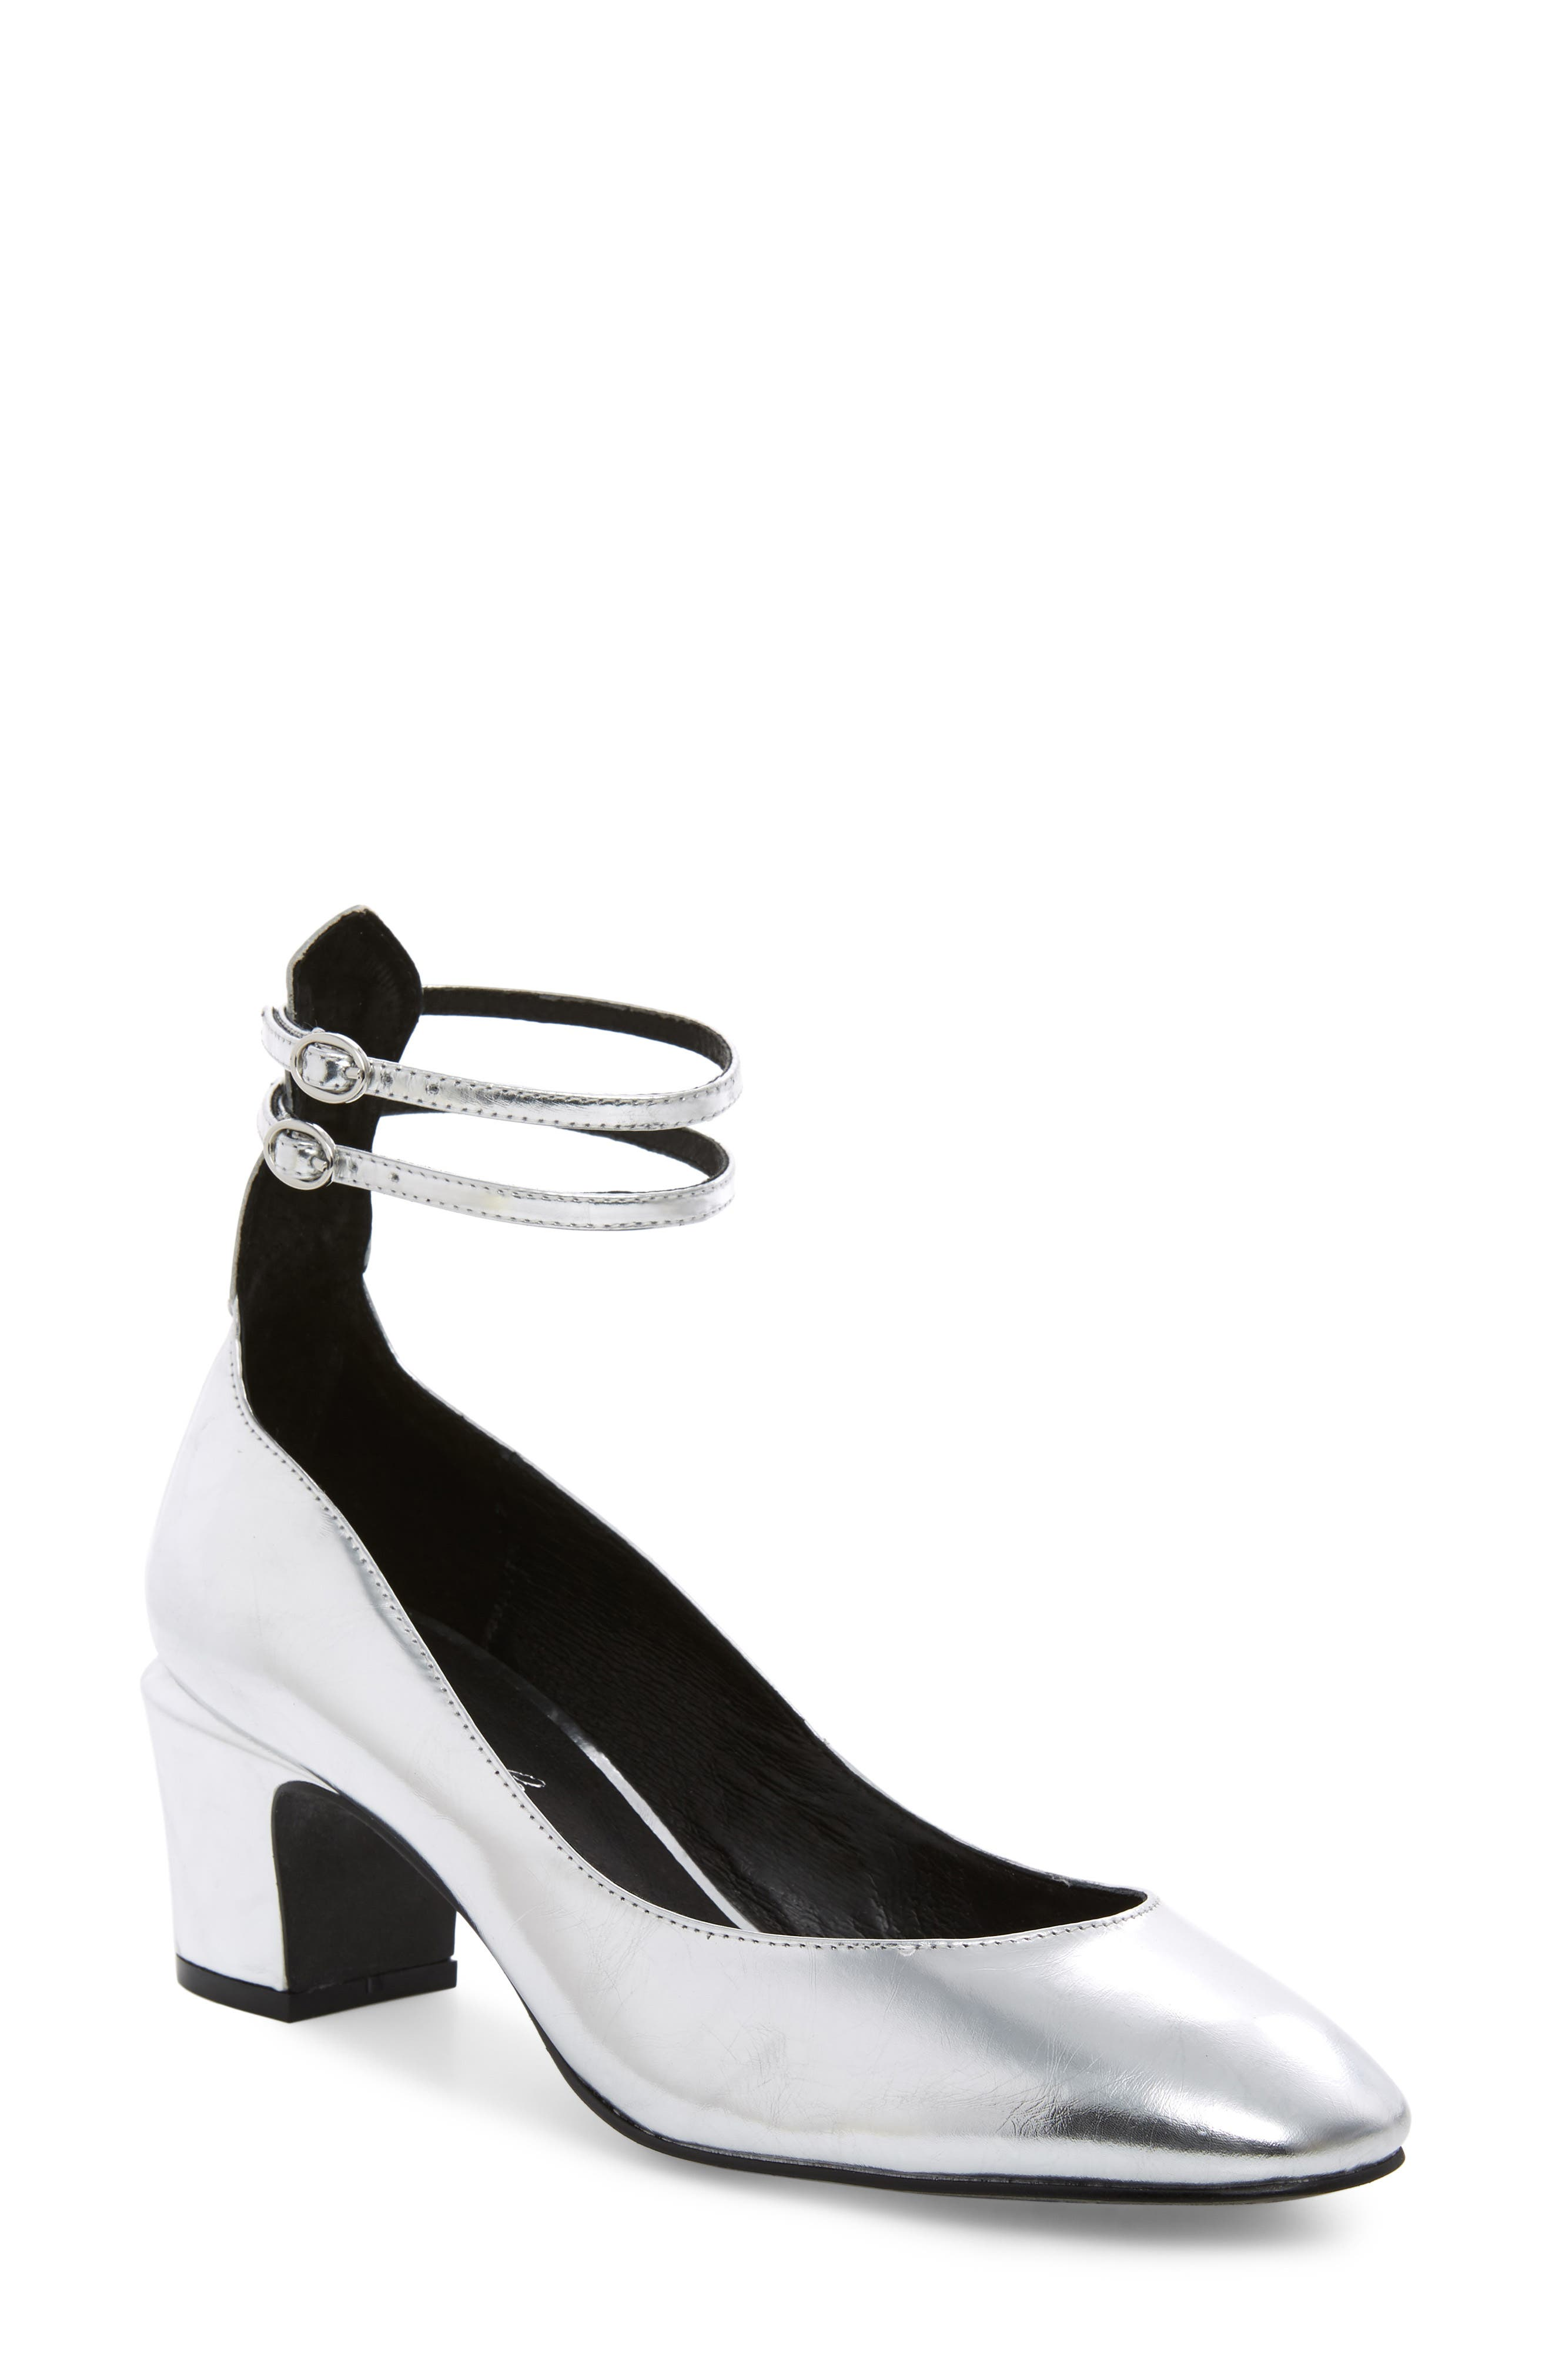 FREE PEOPLE Lana Ankle Strap Pump, Main, color, 040